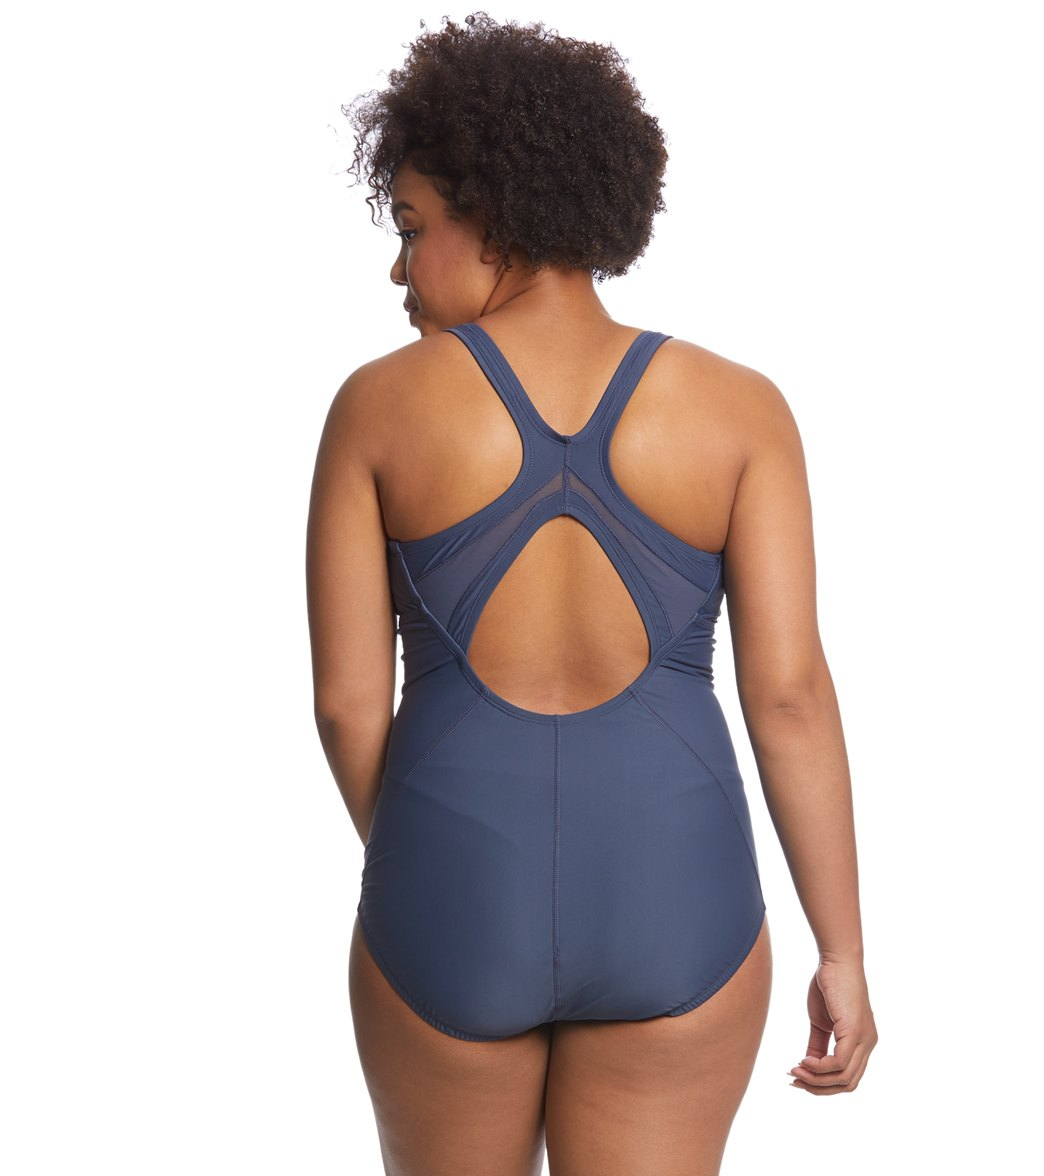 4eca7946017e5 Nike Women s Plus Size Epic One Piece Swimsuit at SwimOutlet.com - Free  Shipping